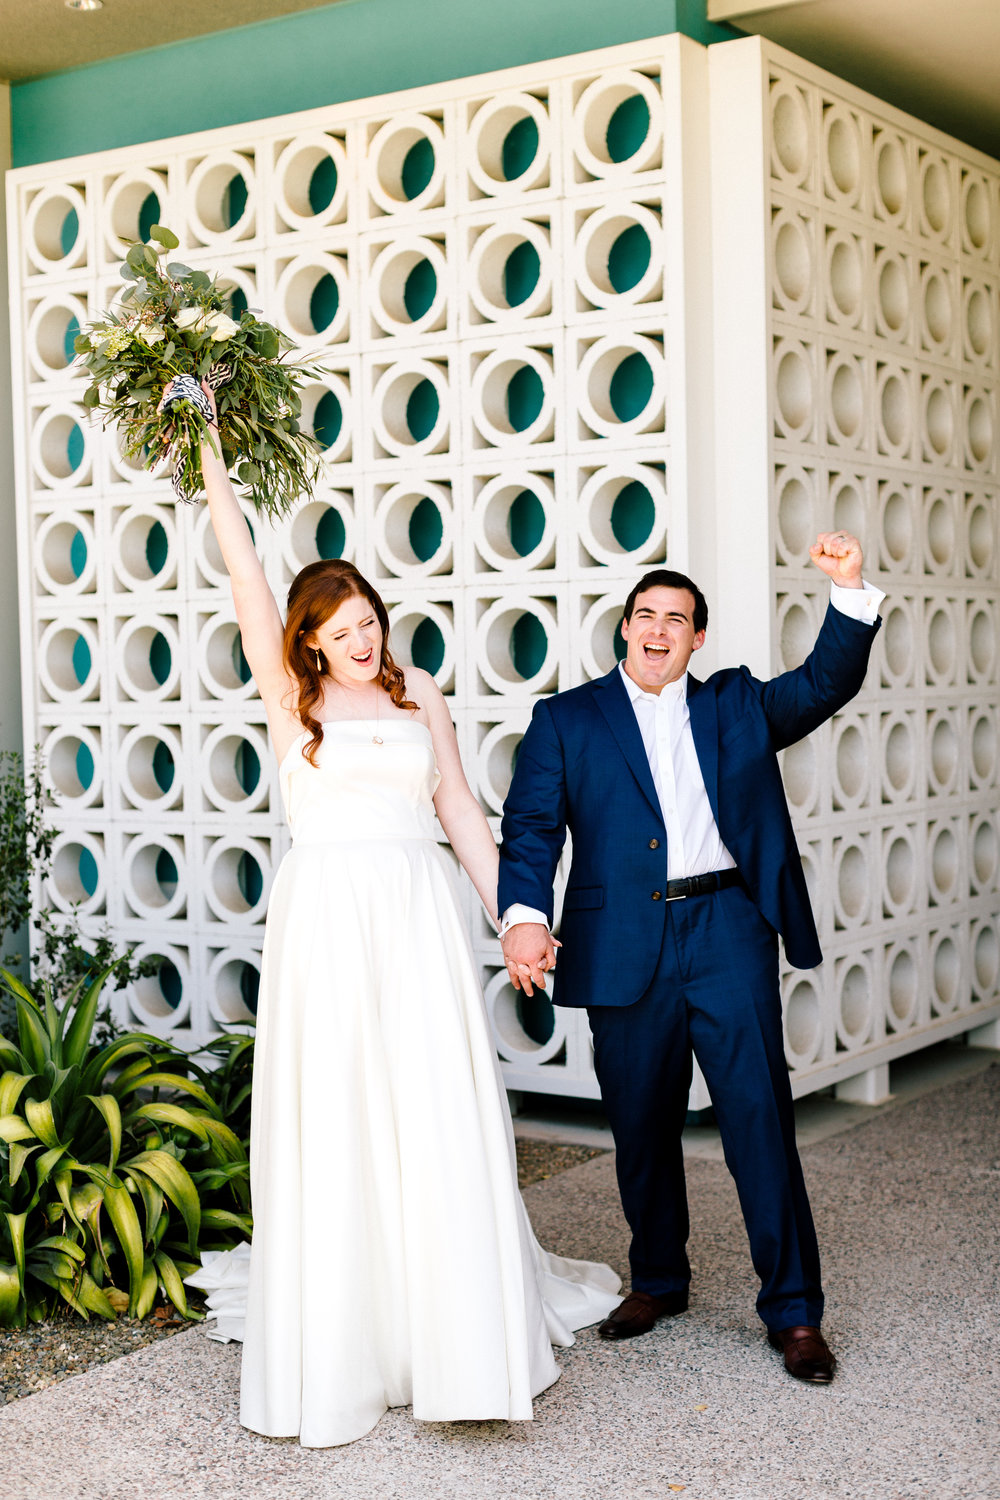 Thomas Shull Photography: Arizona and Destination Wedding